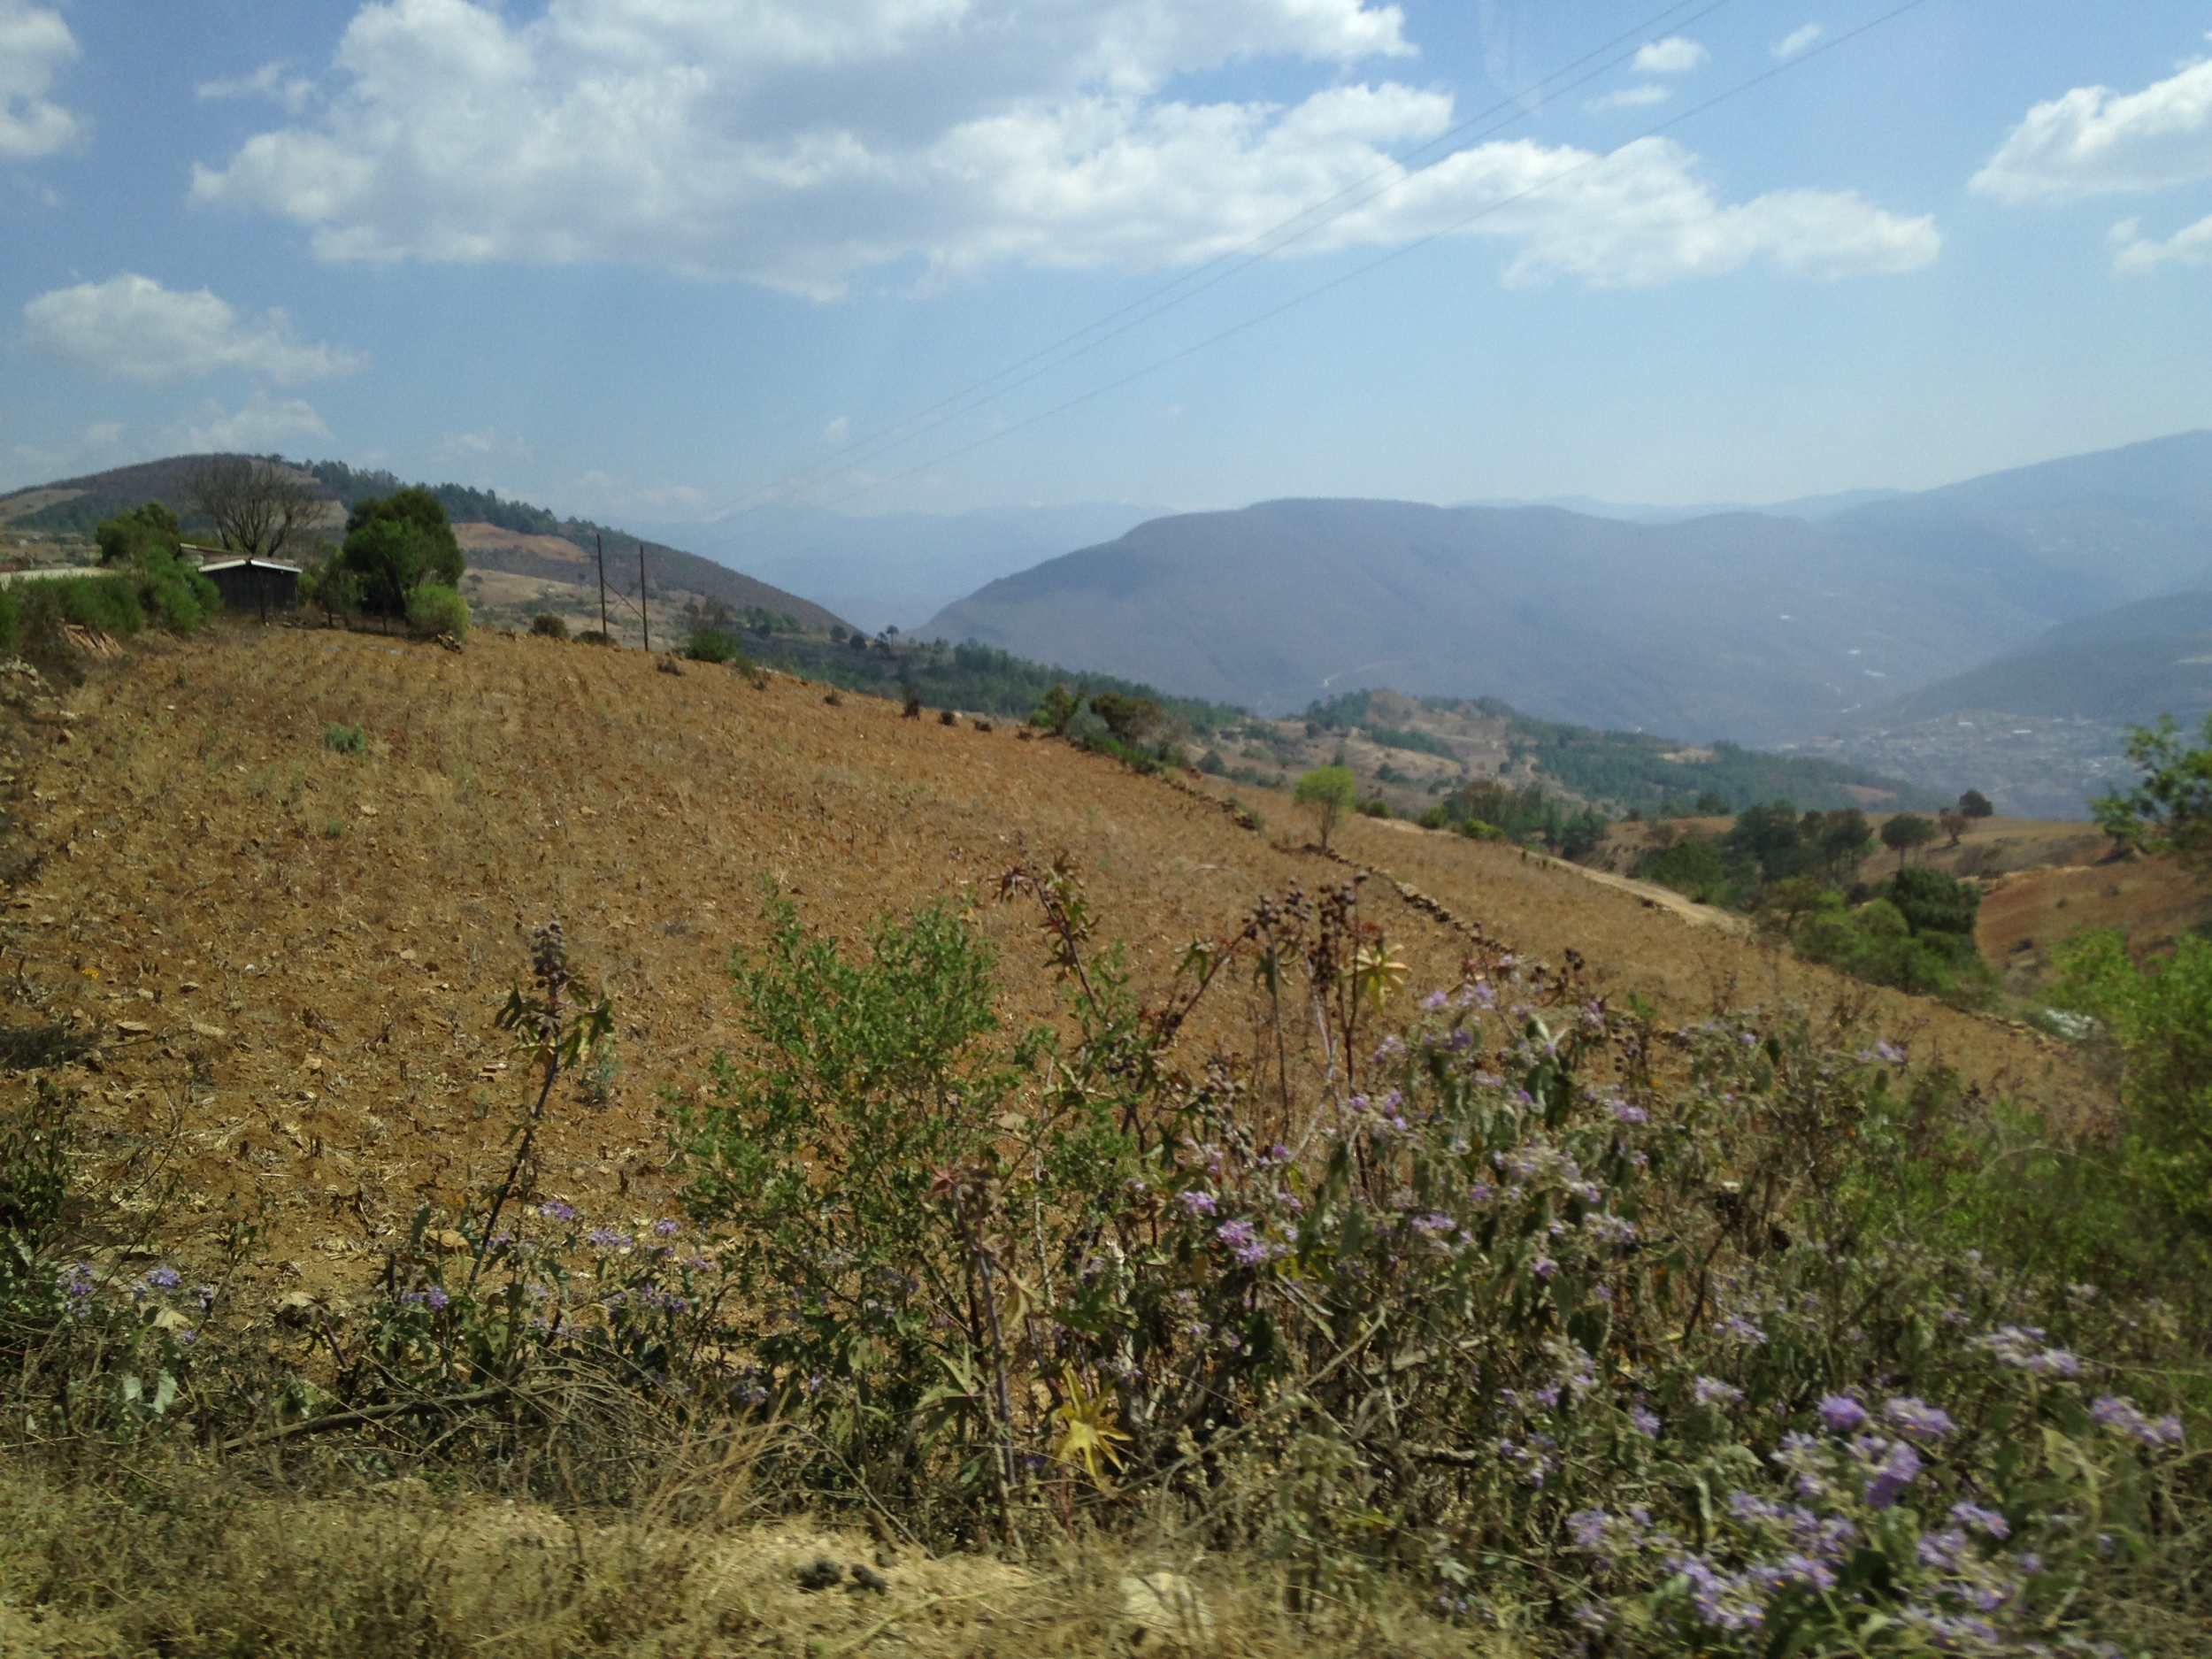 Draft animal-powered farm fields on the hillsides of Santa Ana Yareni